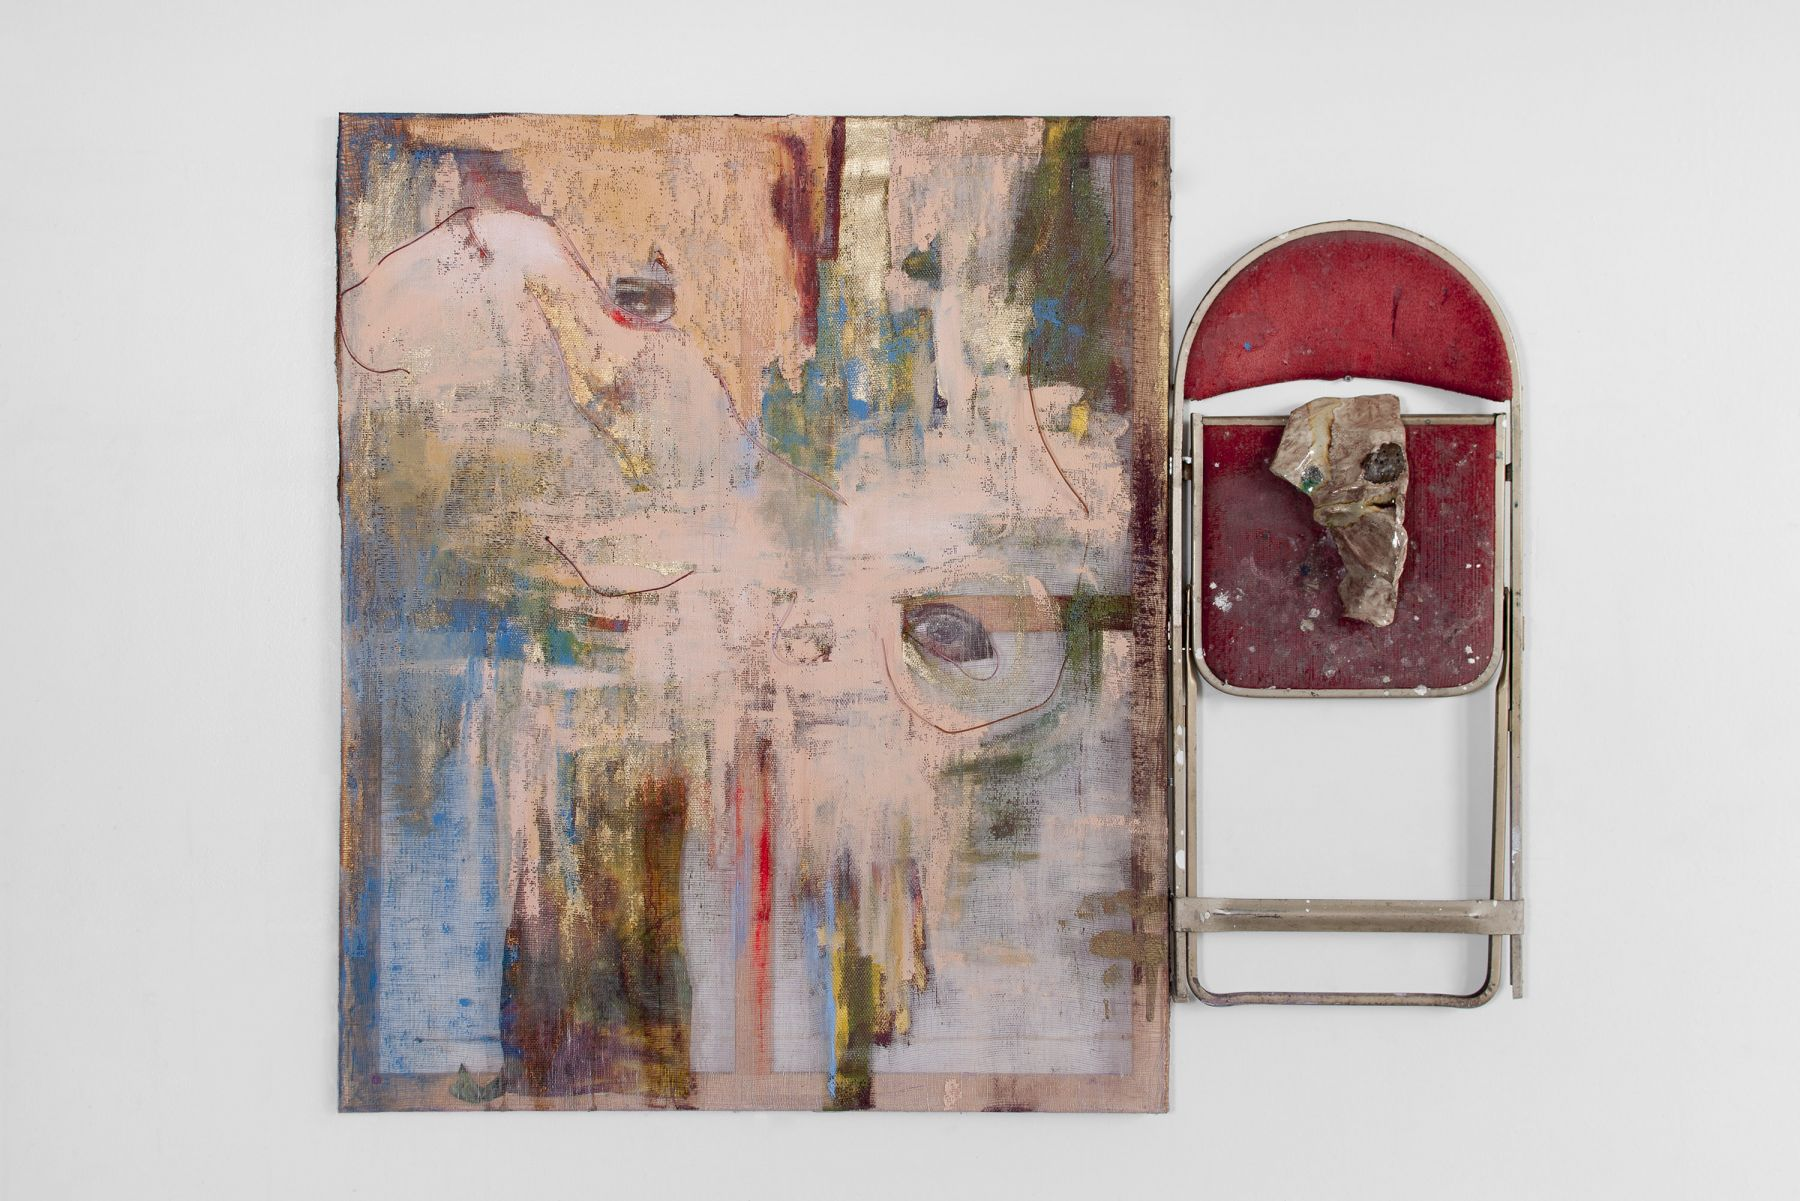 a sculpture by jessica jackson hutchins featuring a chair and a painting